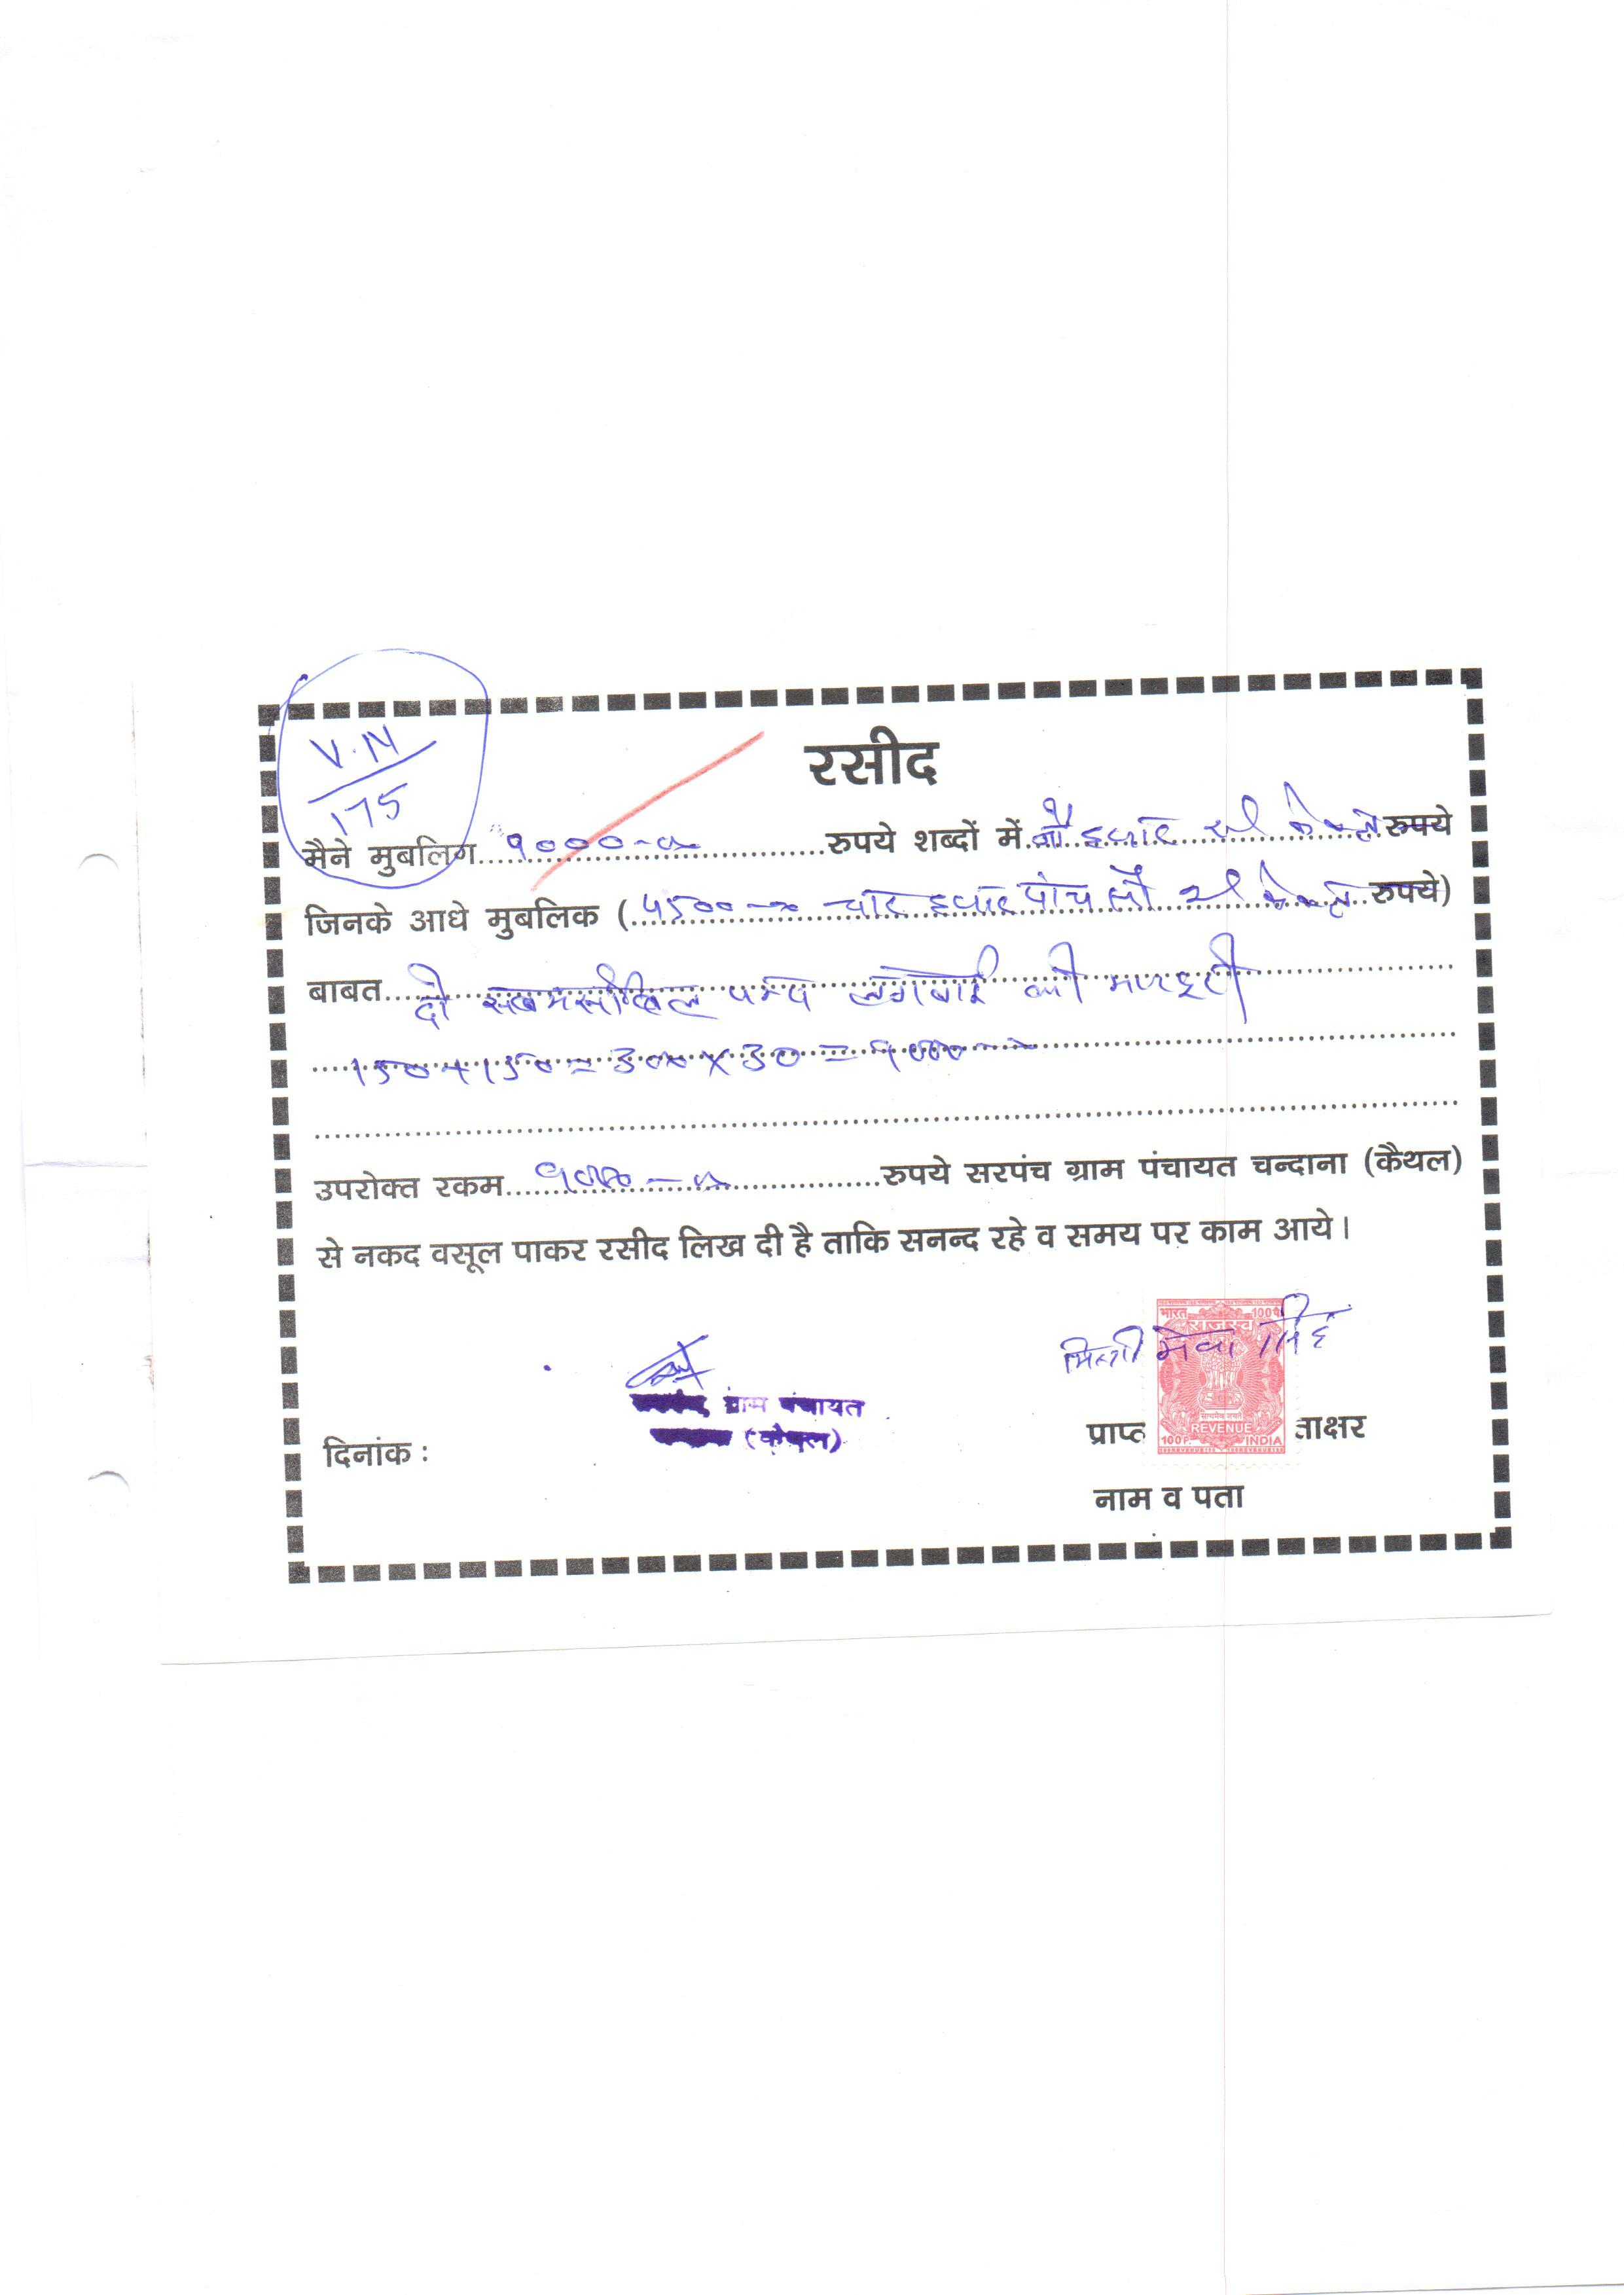 chandana-gram-panchayat-bill00090010